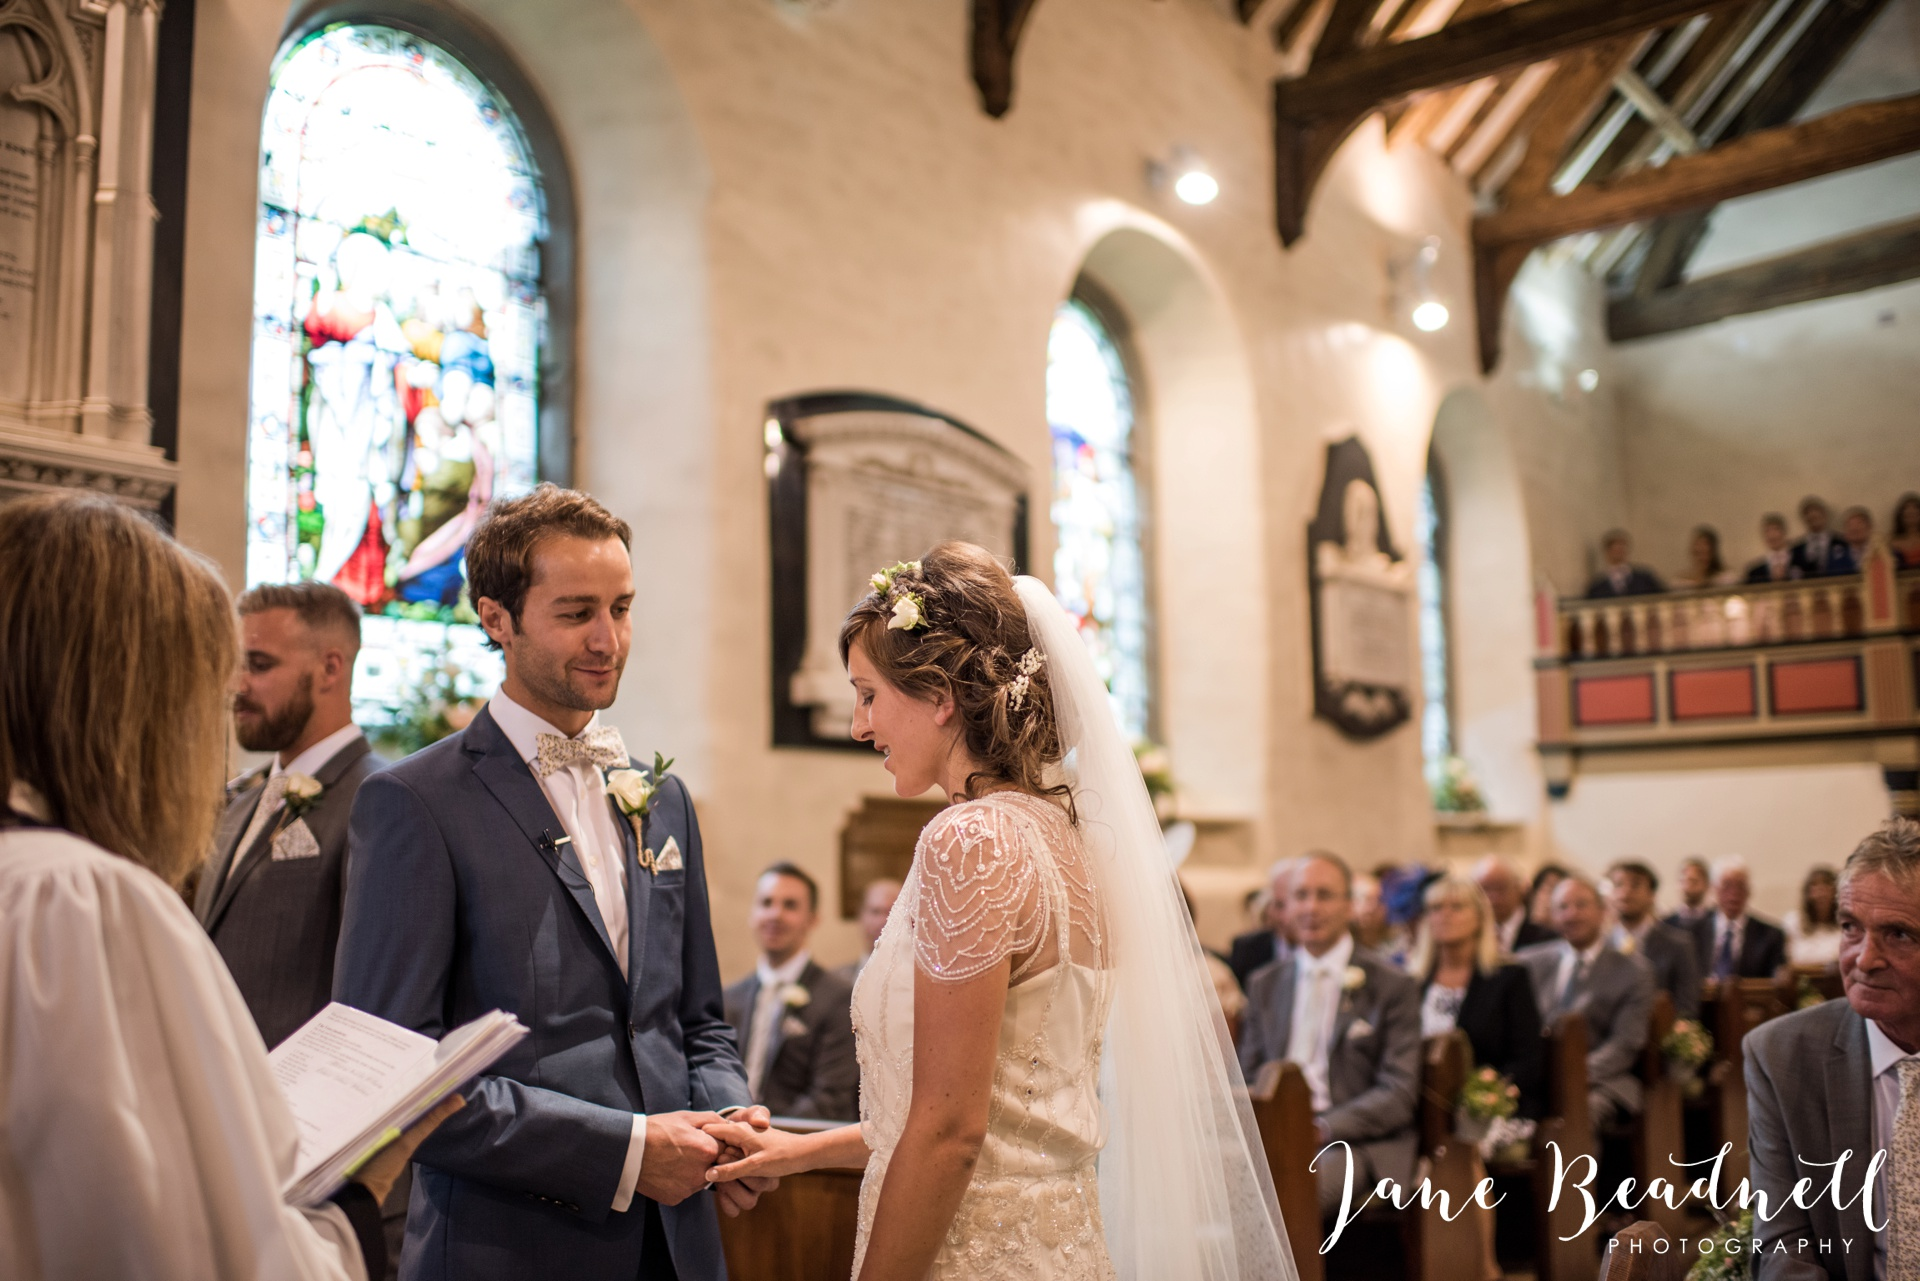 Jane Beadnell fine art wedding photographer Leeds_0042